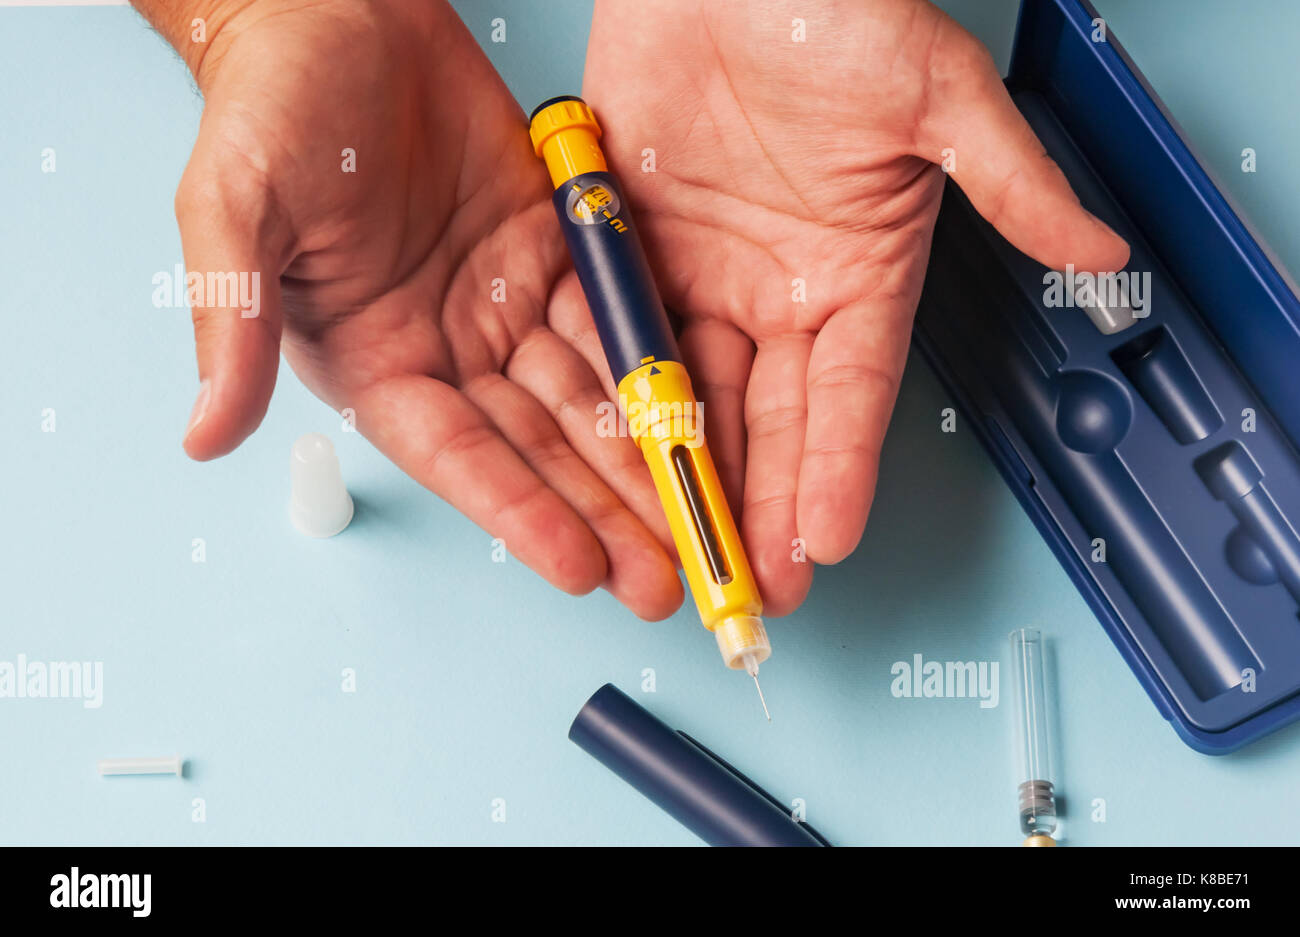 A man holds a syringe for subcutaneous injection of hormonal drugs in the IVF protocol (in vitro fertilization). - Stock Image